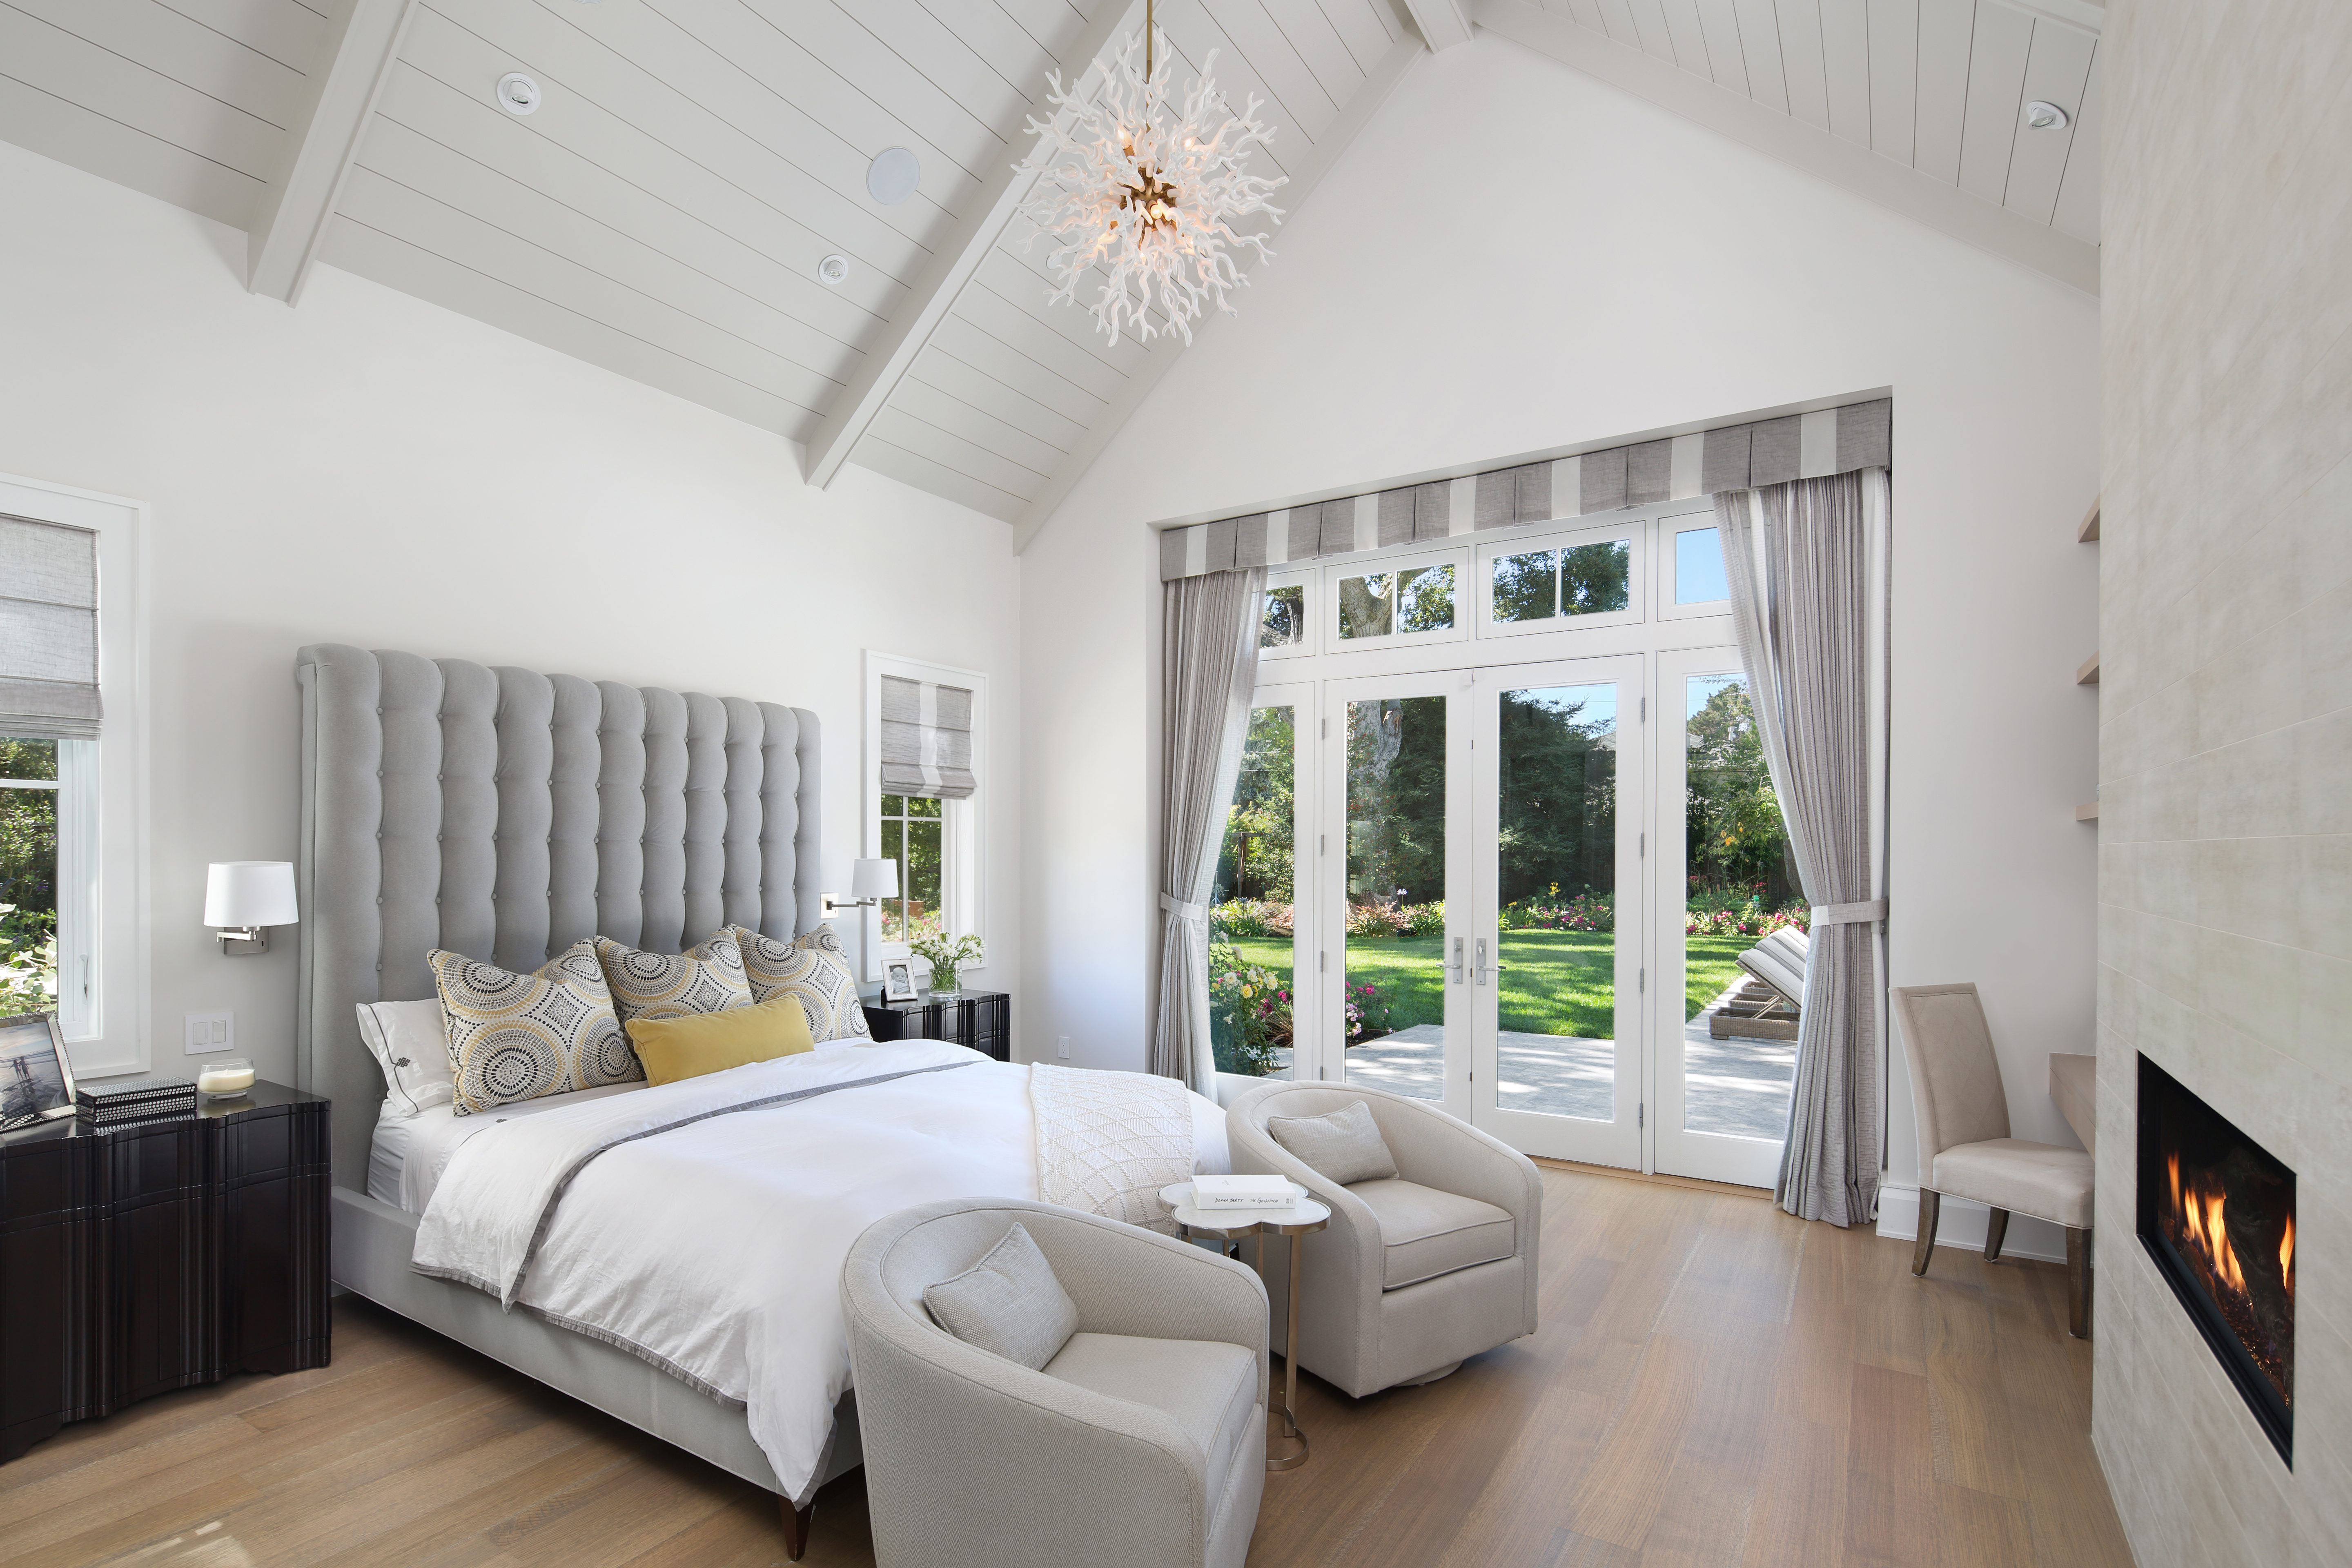 Enter this light-filled master bedroom from the patio. Crisp, white walls and a vaulted ceiling set the basis for this fresh, clean space.Completed with a gray, tufted headboard, the bed is from Hickory Chair. Nightstands from Oly Studio sit beside the bed, while swivel chairs from Room & Board sit at the foot of the bed.Acrossthe room,Daltile porcelain tiles make up the fireplace mantel.